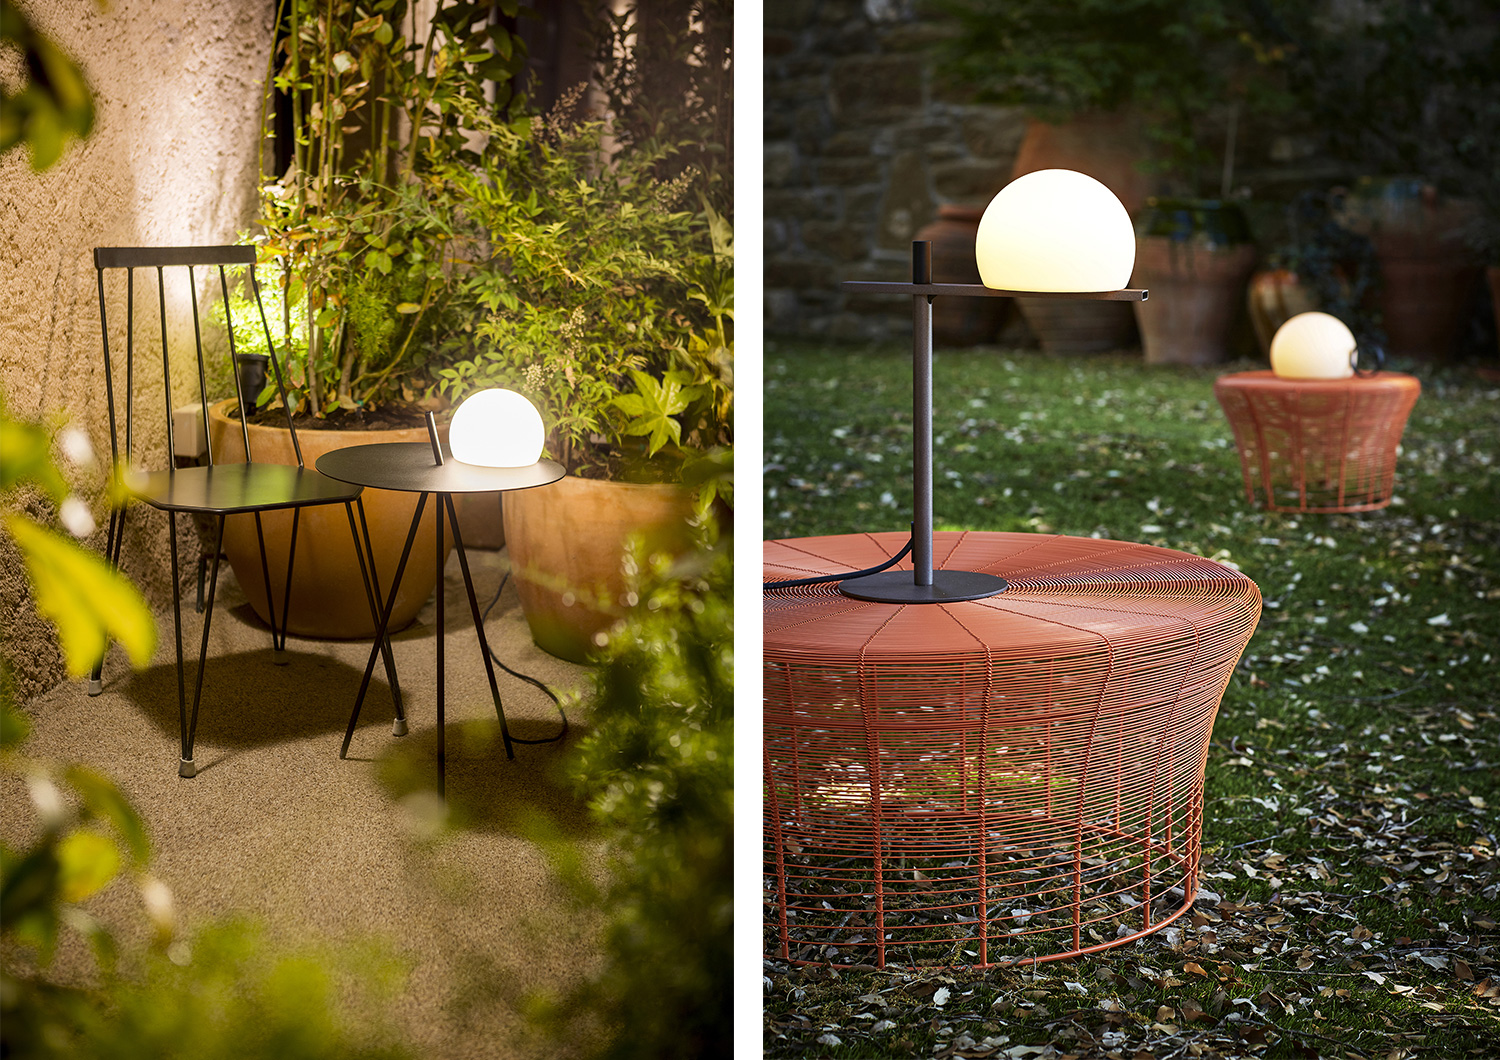 Outdoor Decorative Lamps Gallery 04